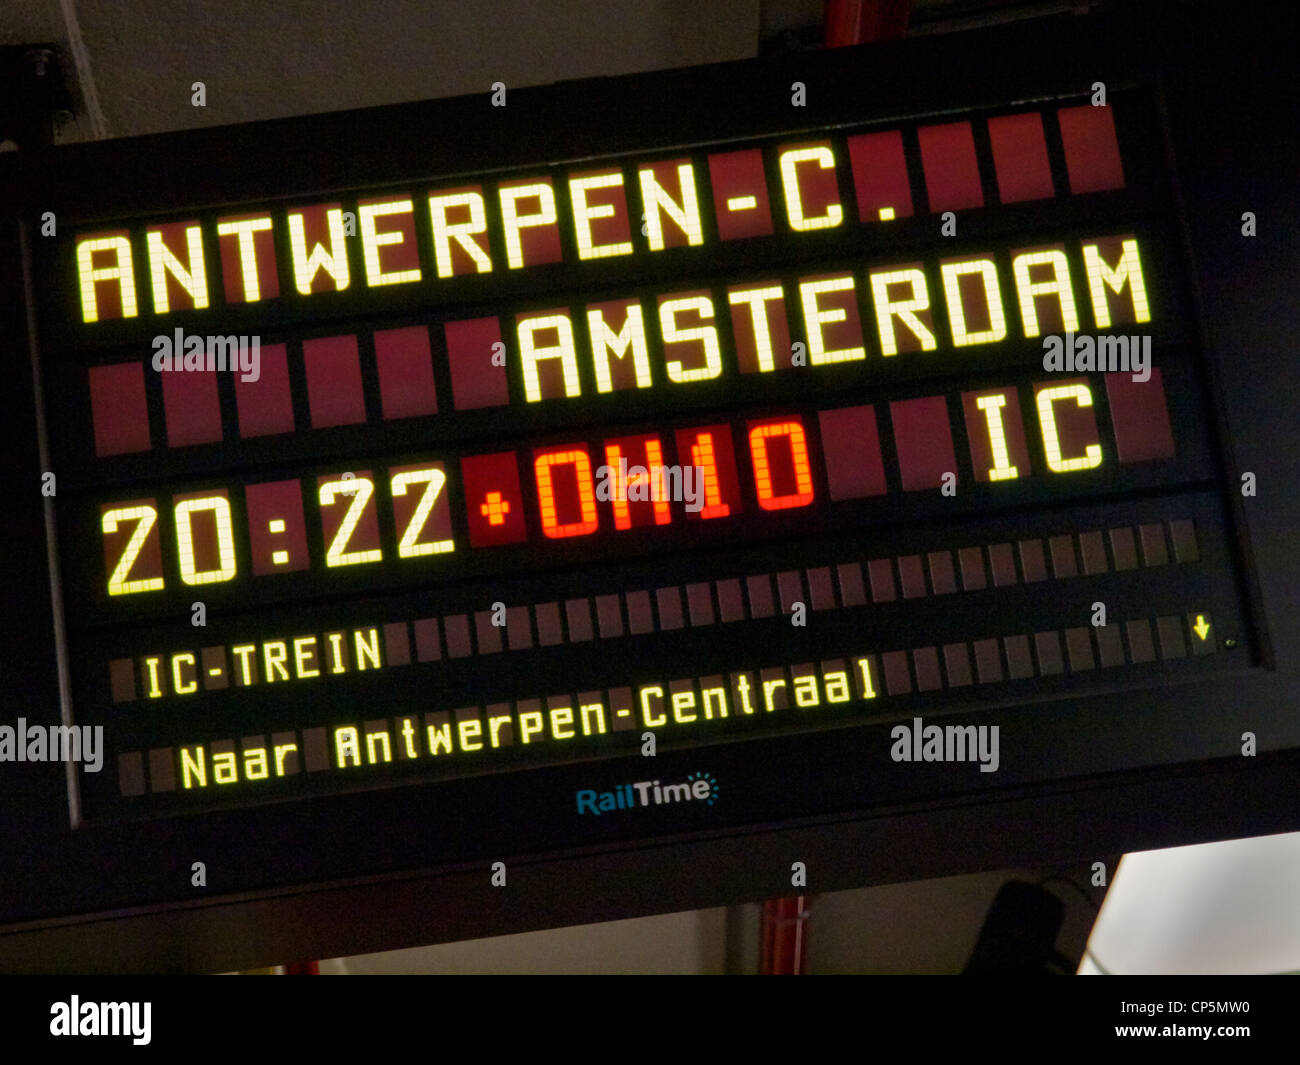 Modern digital sign saying the IC train from Brussels to Antwerp and Amsterdam is delayed by 10 minutes. - Stock Image